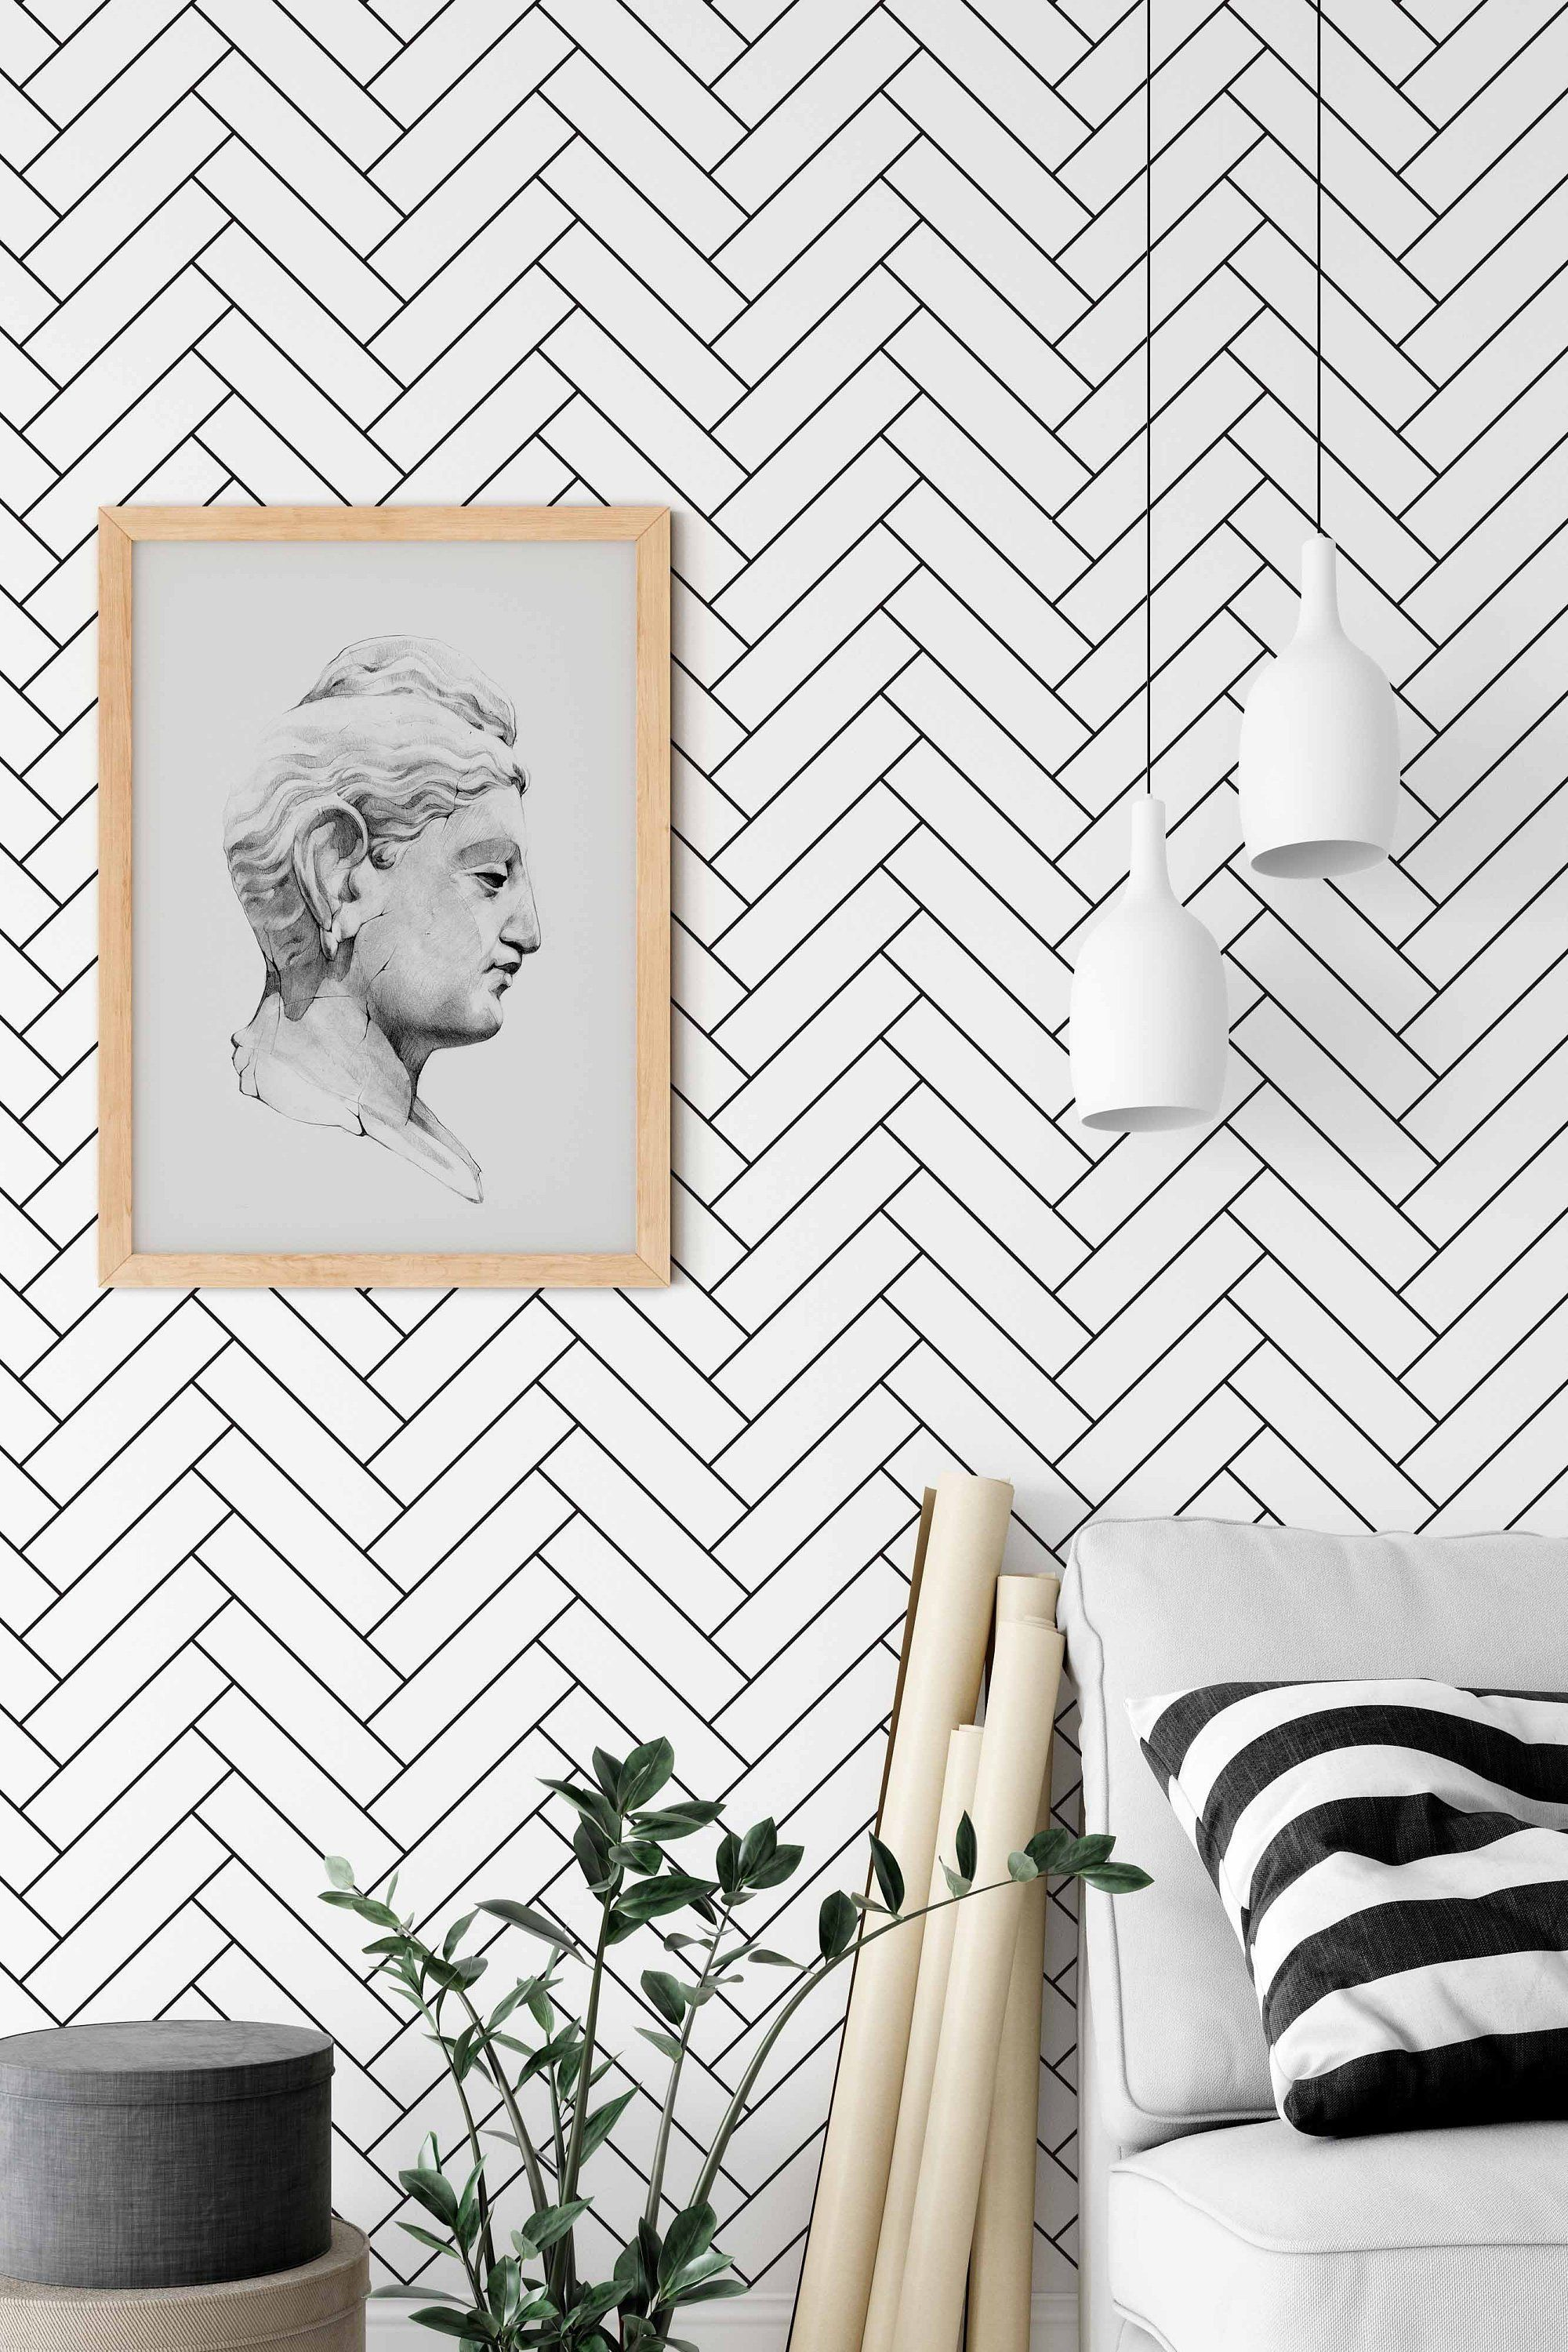 Removable Wallpaper With Herringbone Pattern Black And White Pints Wall Decal Minimalist Herringbone Wallpaper Monochrome Wall Sticker Removable Wallpaper Monochrome Wall Herringbone Wallpaper